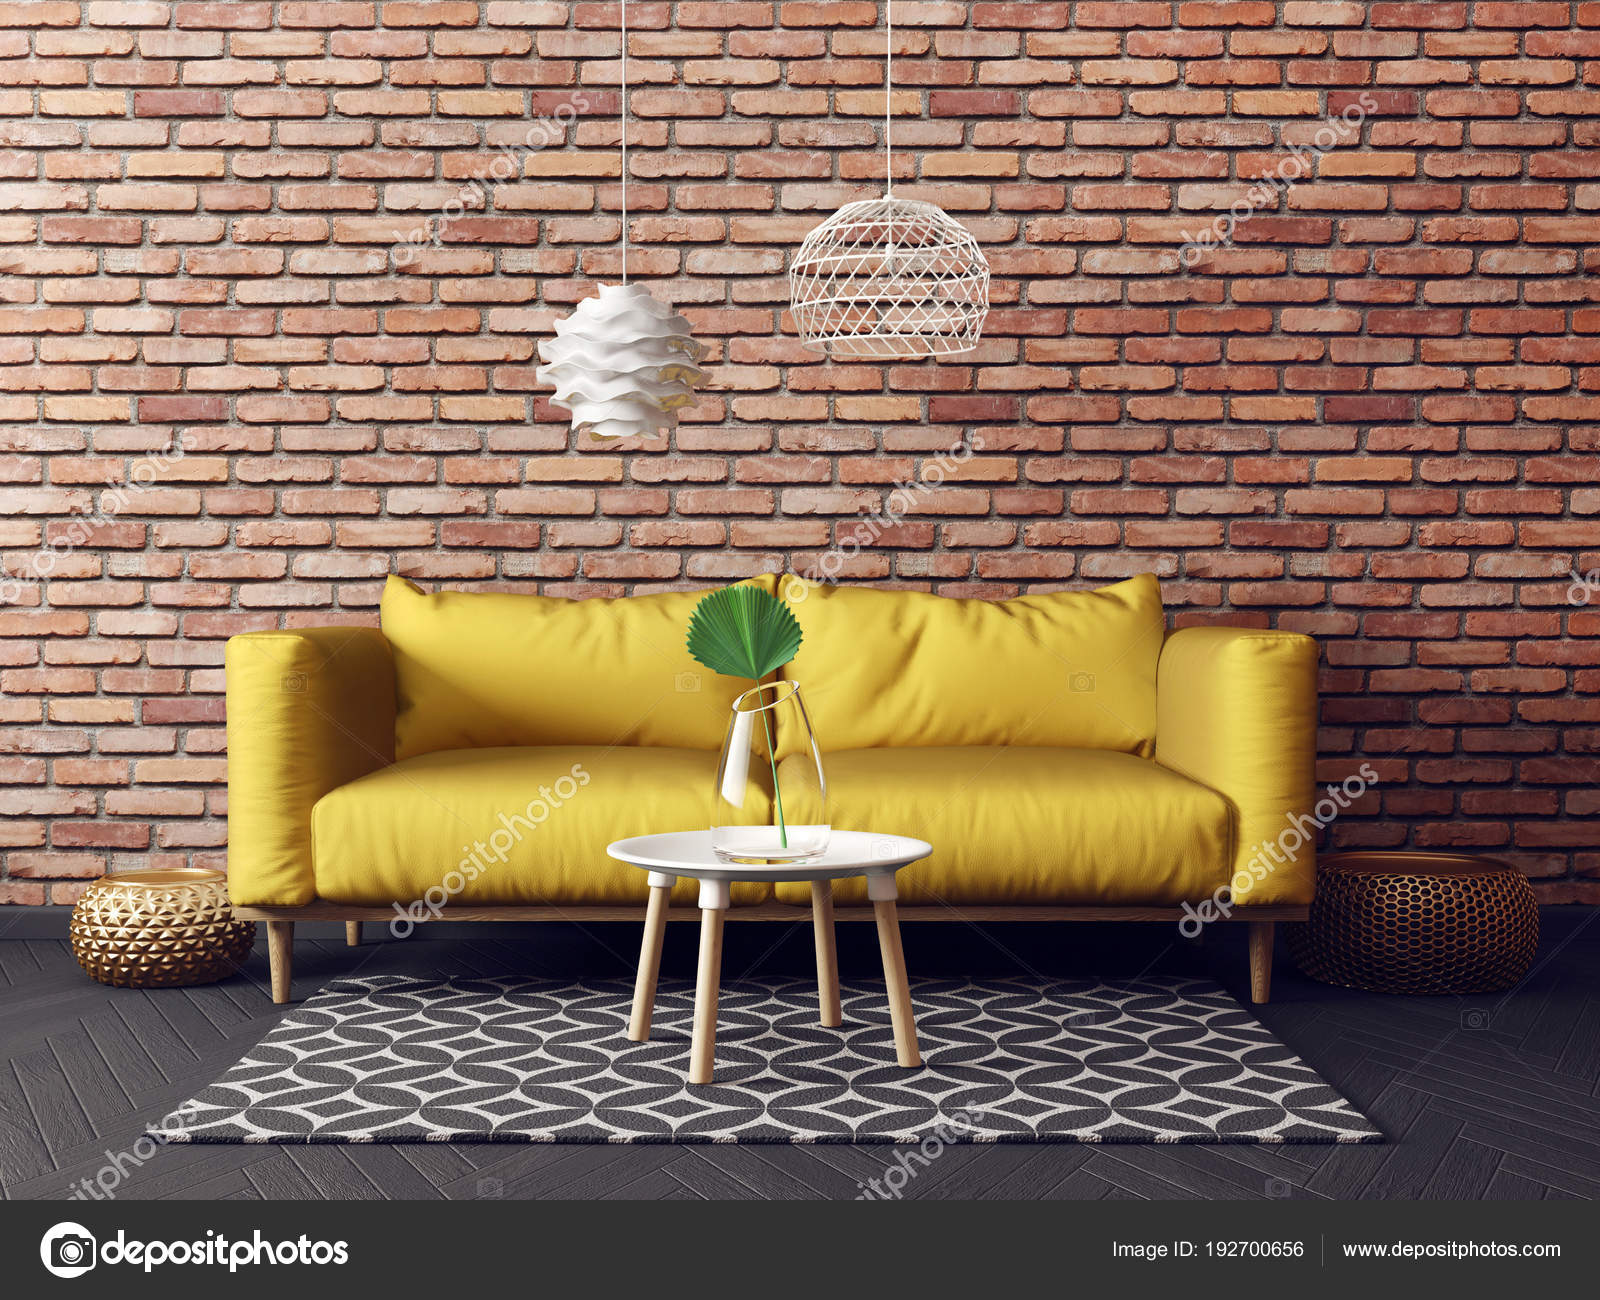 Modern living room yellow sofa lamp scandinavian interior design furniture stock photo